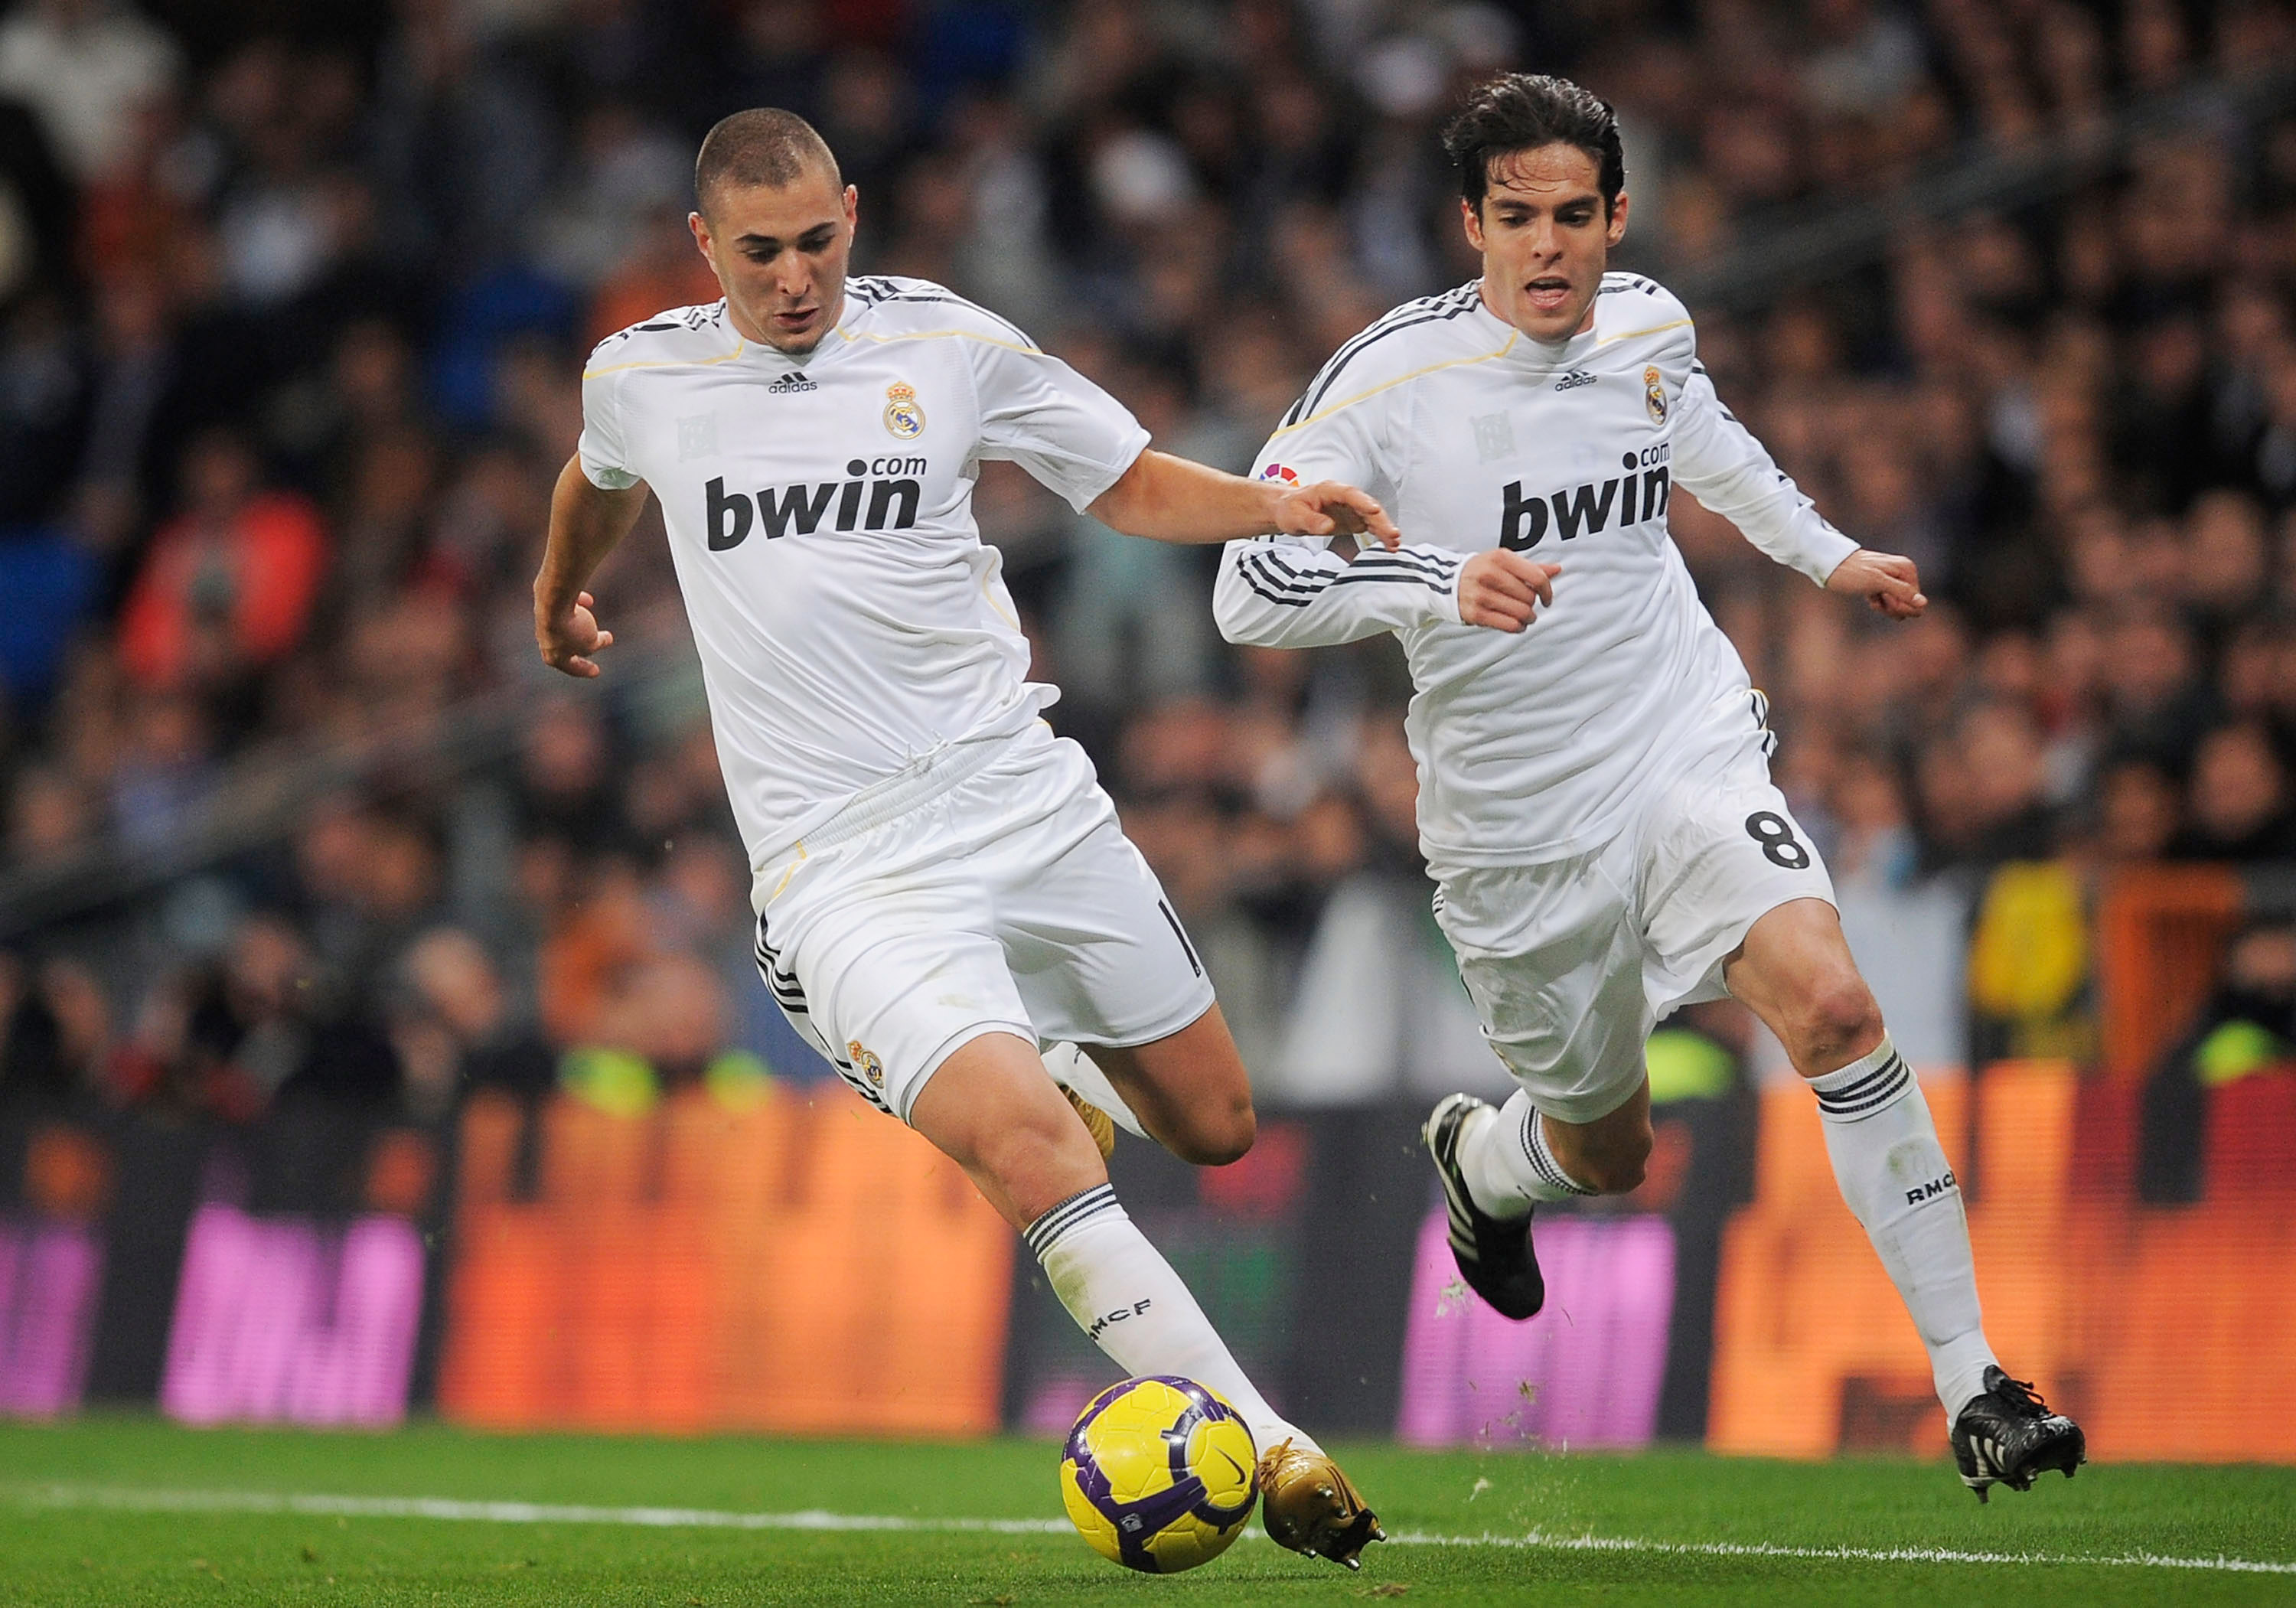 MADRID, SPAIN - FEBRUARY 06:  Karim Benzema (L) and Kaka of Real Madrid in action during the La Liga match between Real Madrid and Espanyol at Estadio Santiago Bernabeu on February 6, 2010 in Madrid, Spain.  (Photo by Denis Doyle/Getty Images)